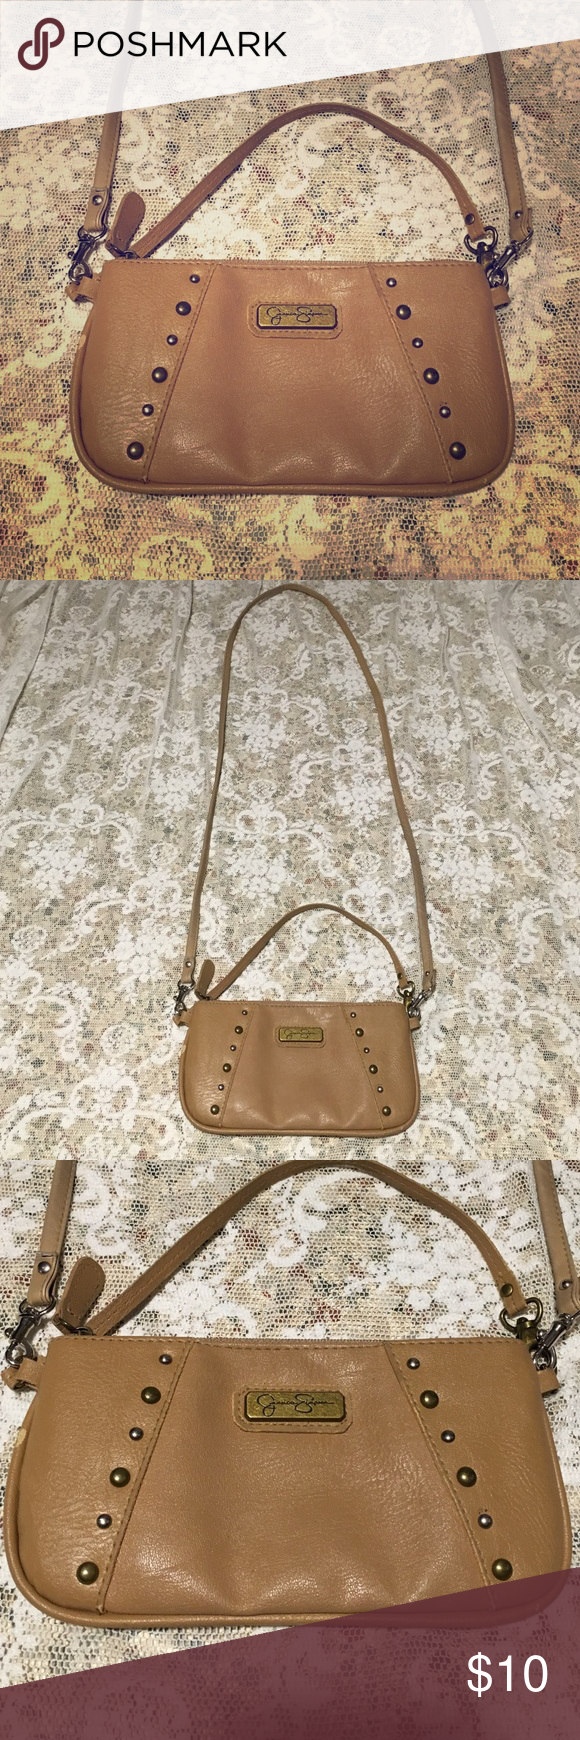 JESSICA SIMPSON MESSENGER TOTE BEIDGE  PURSE RAVE JESSICA SIMPSON MESSENGER TOTE BEIDGE  PURSE. Jessica Simpson Bags Crossbody Bags